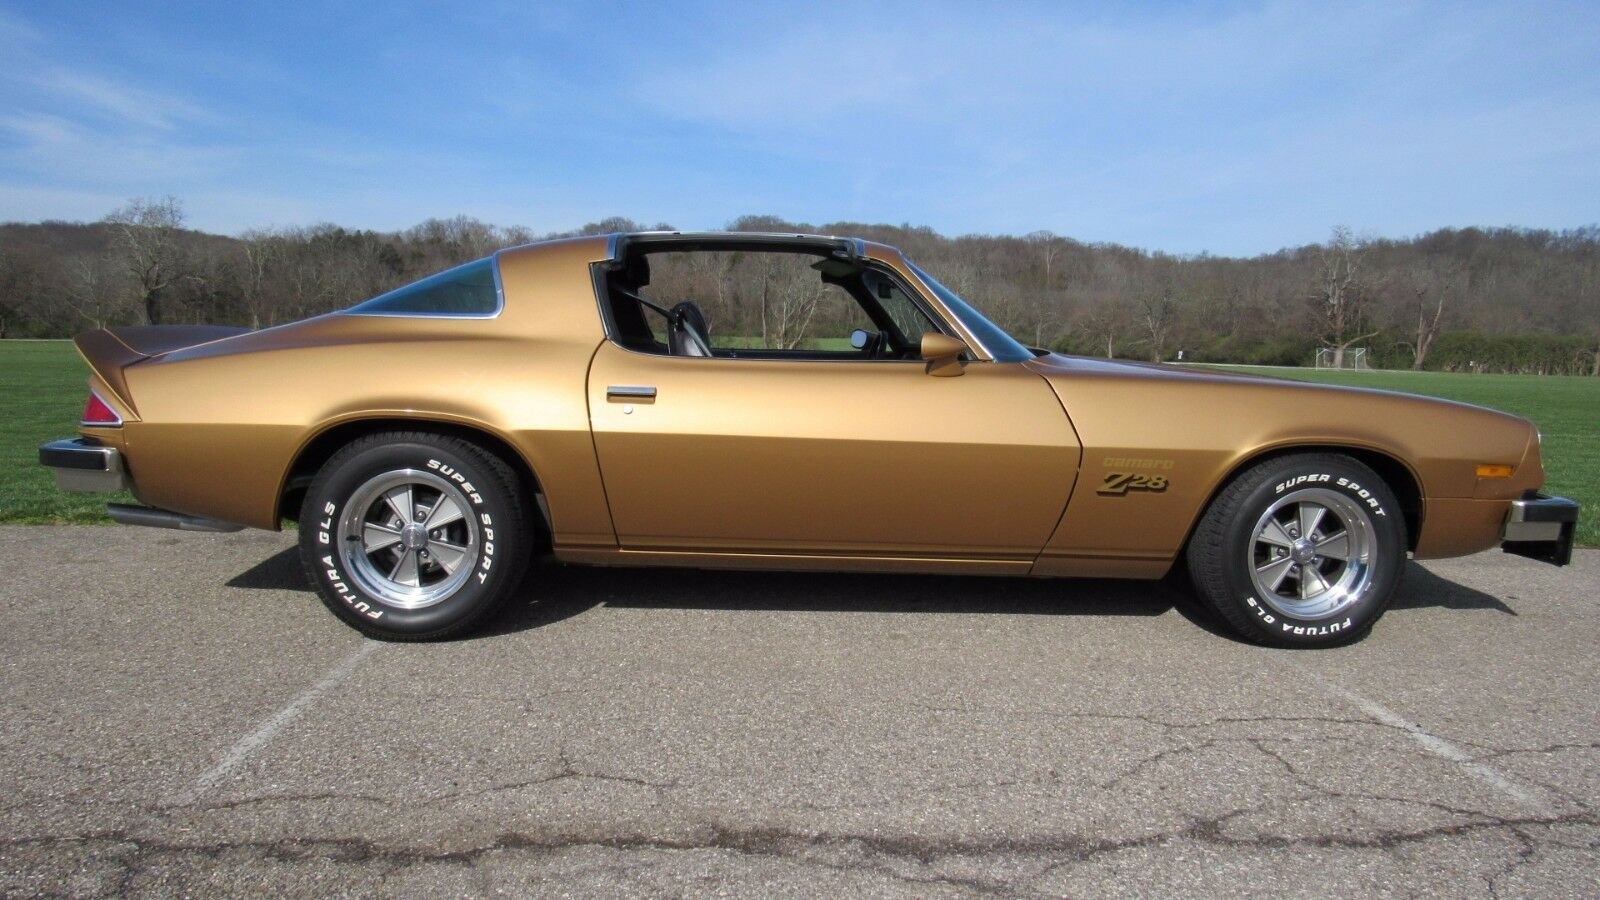 Primary image for 1977 Chevrolet Camaro Z28 gold t-tops | 24 x 36 INCH POSTER  | sports car